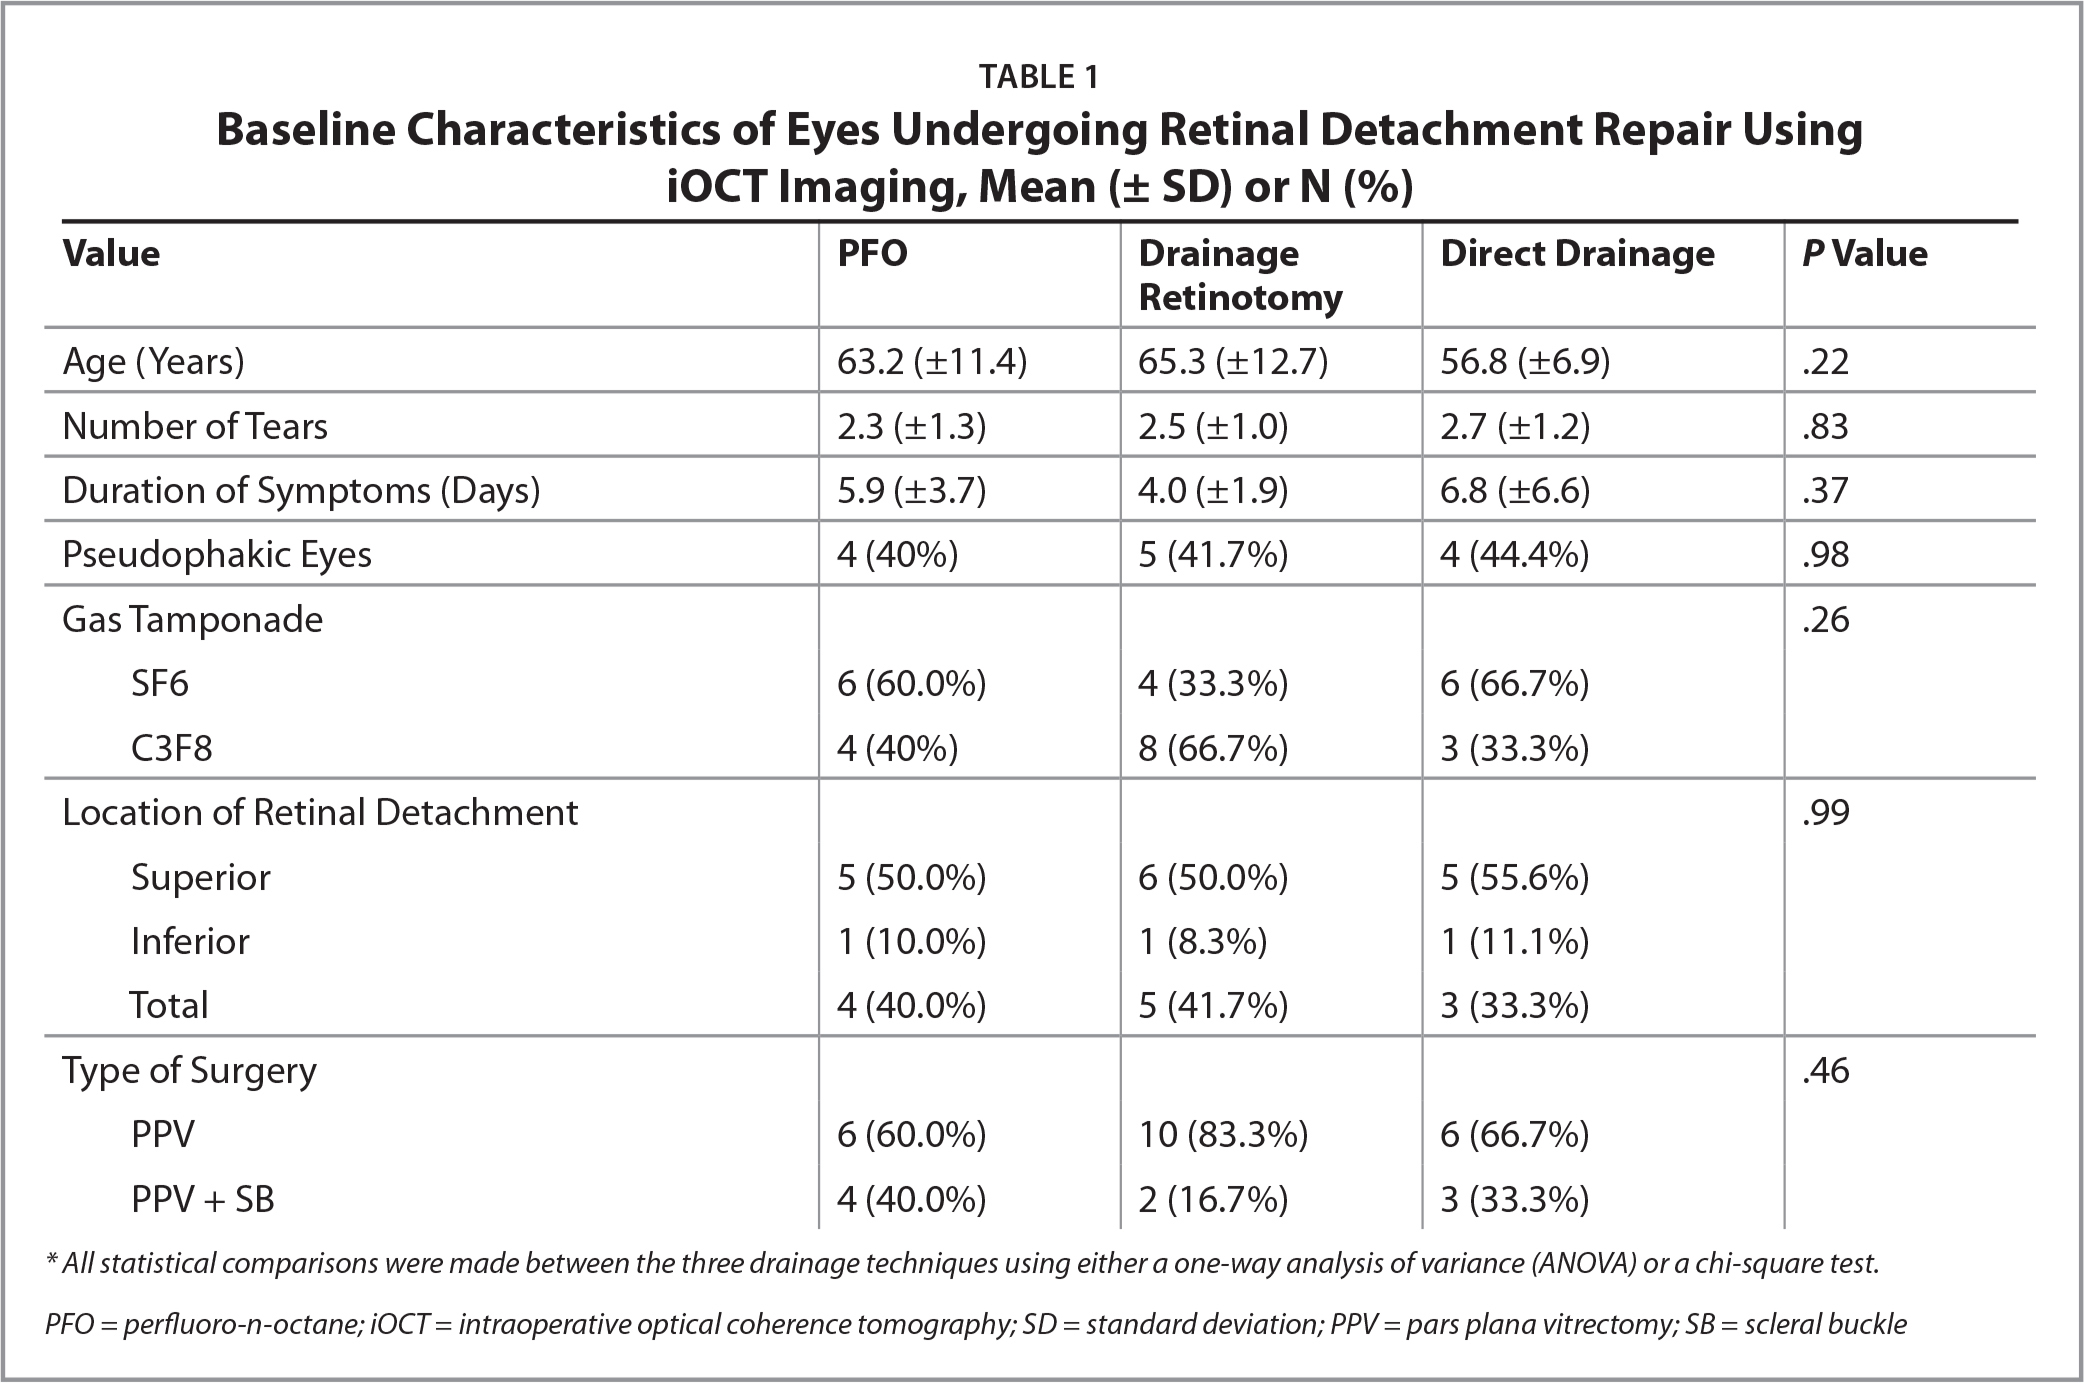 Baseline Characteristics of Eyes Undergoing Retinal Detachment Repair Using iOCT Imaging, Mean (± SD) or N (%)